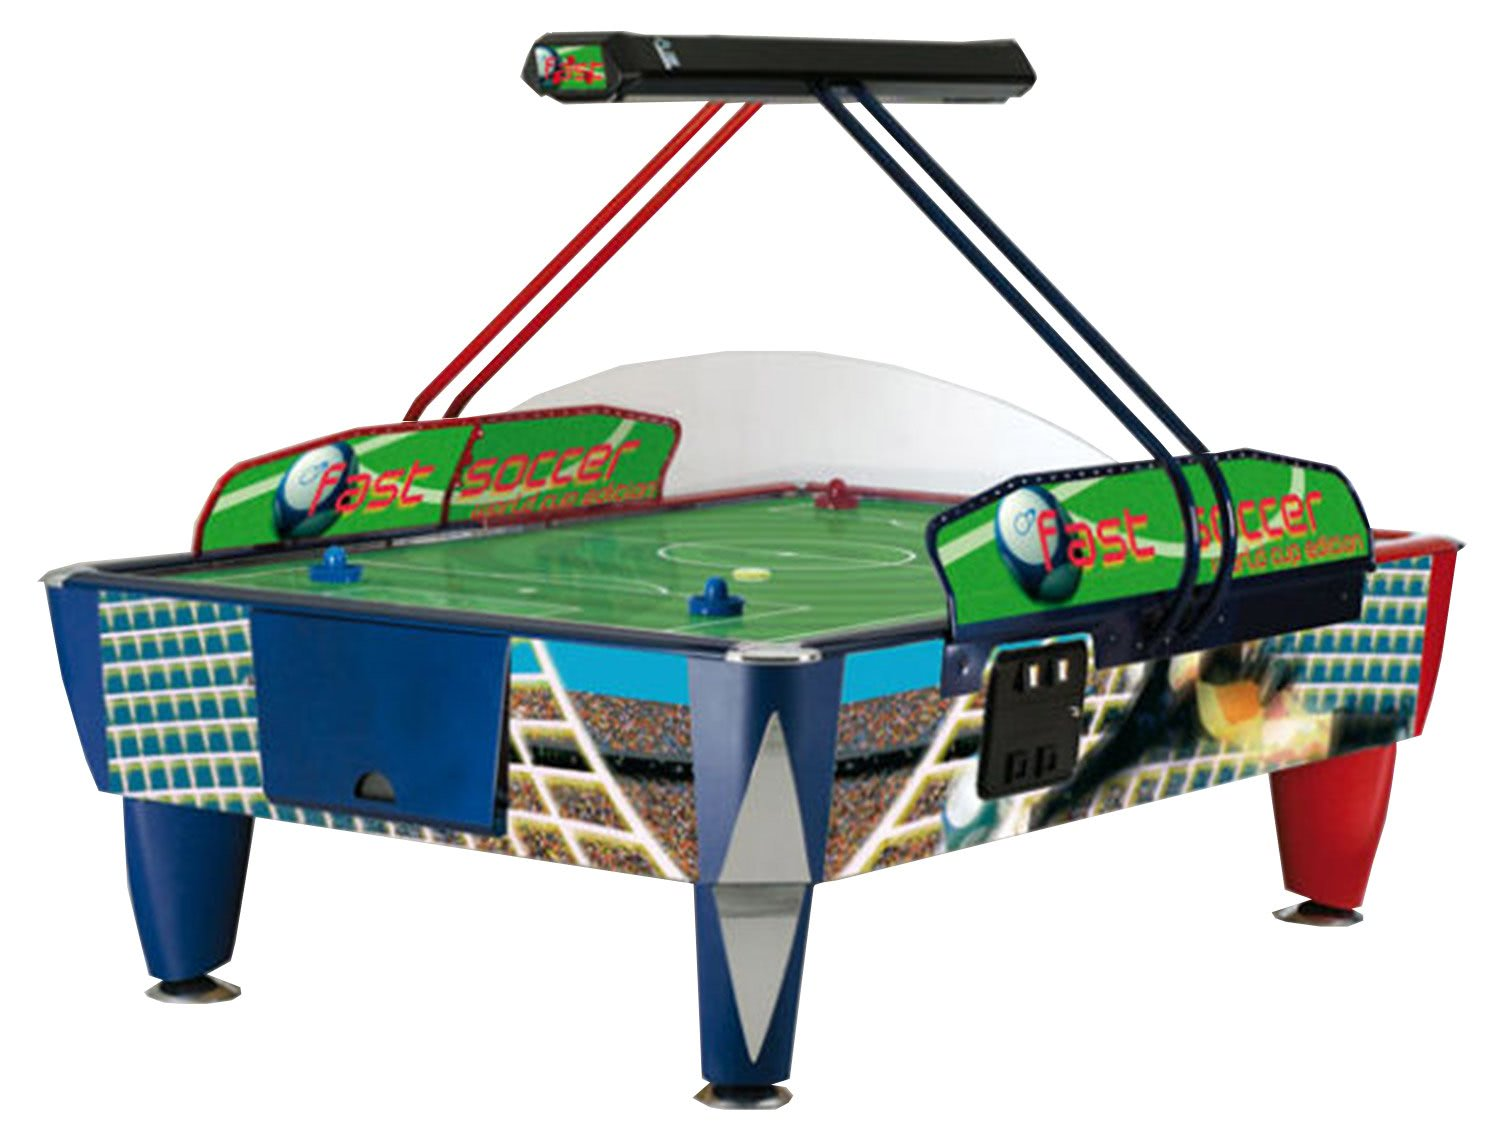 Sam double fast soccer 8 foot commercial air hockey table for Table hockey